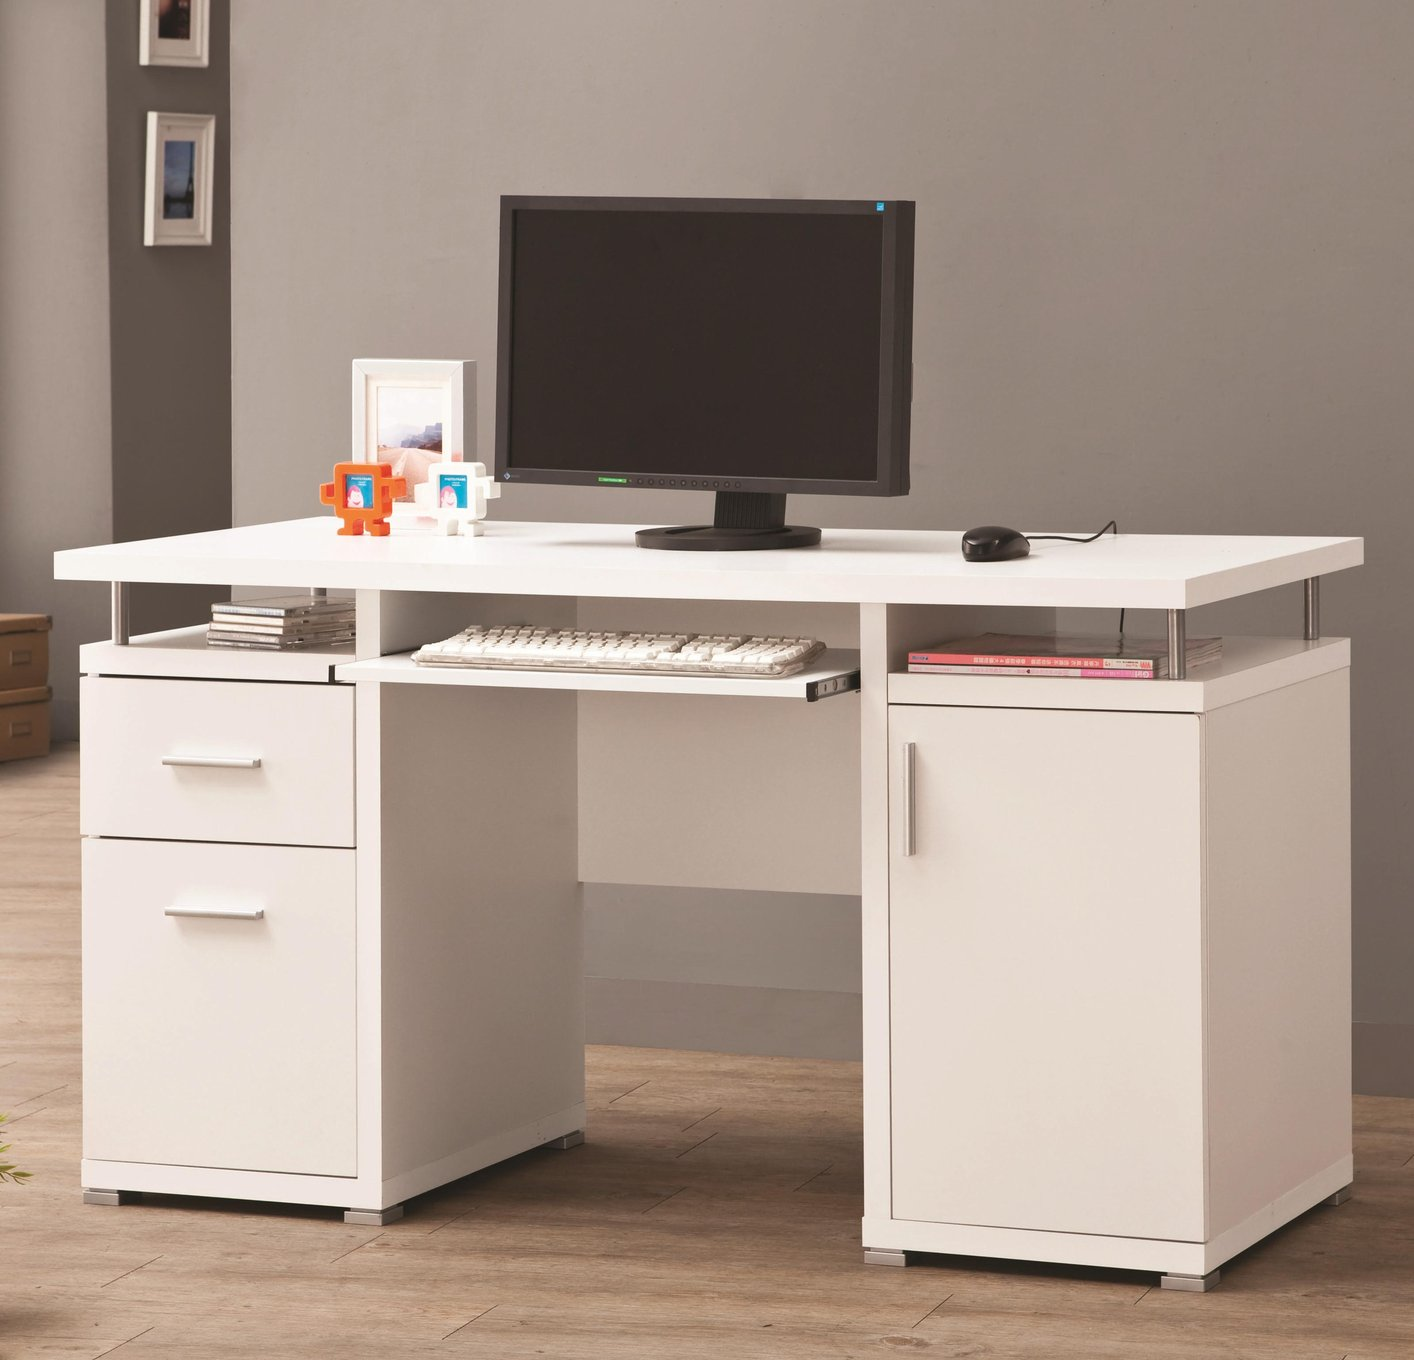 Coaster 800108 White Wood Computer Desk - Steal-A-Sofa Furniture